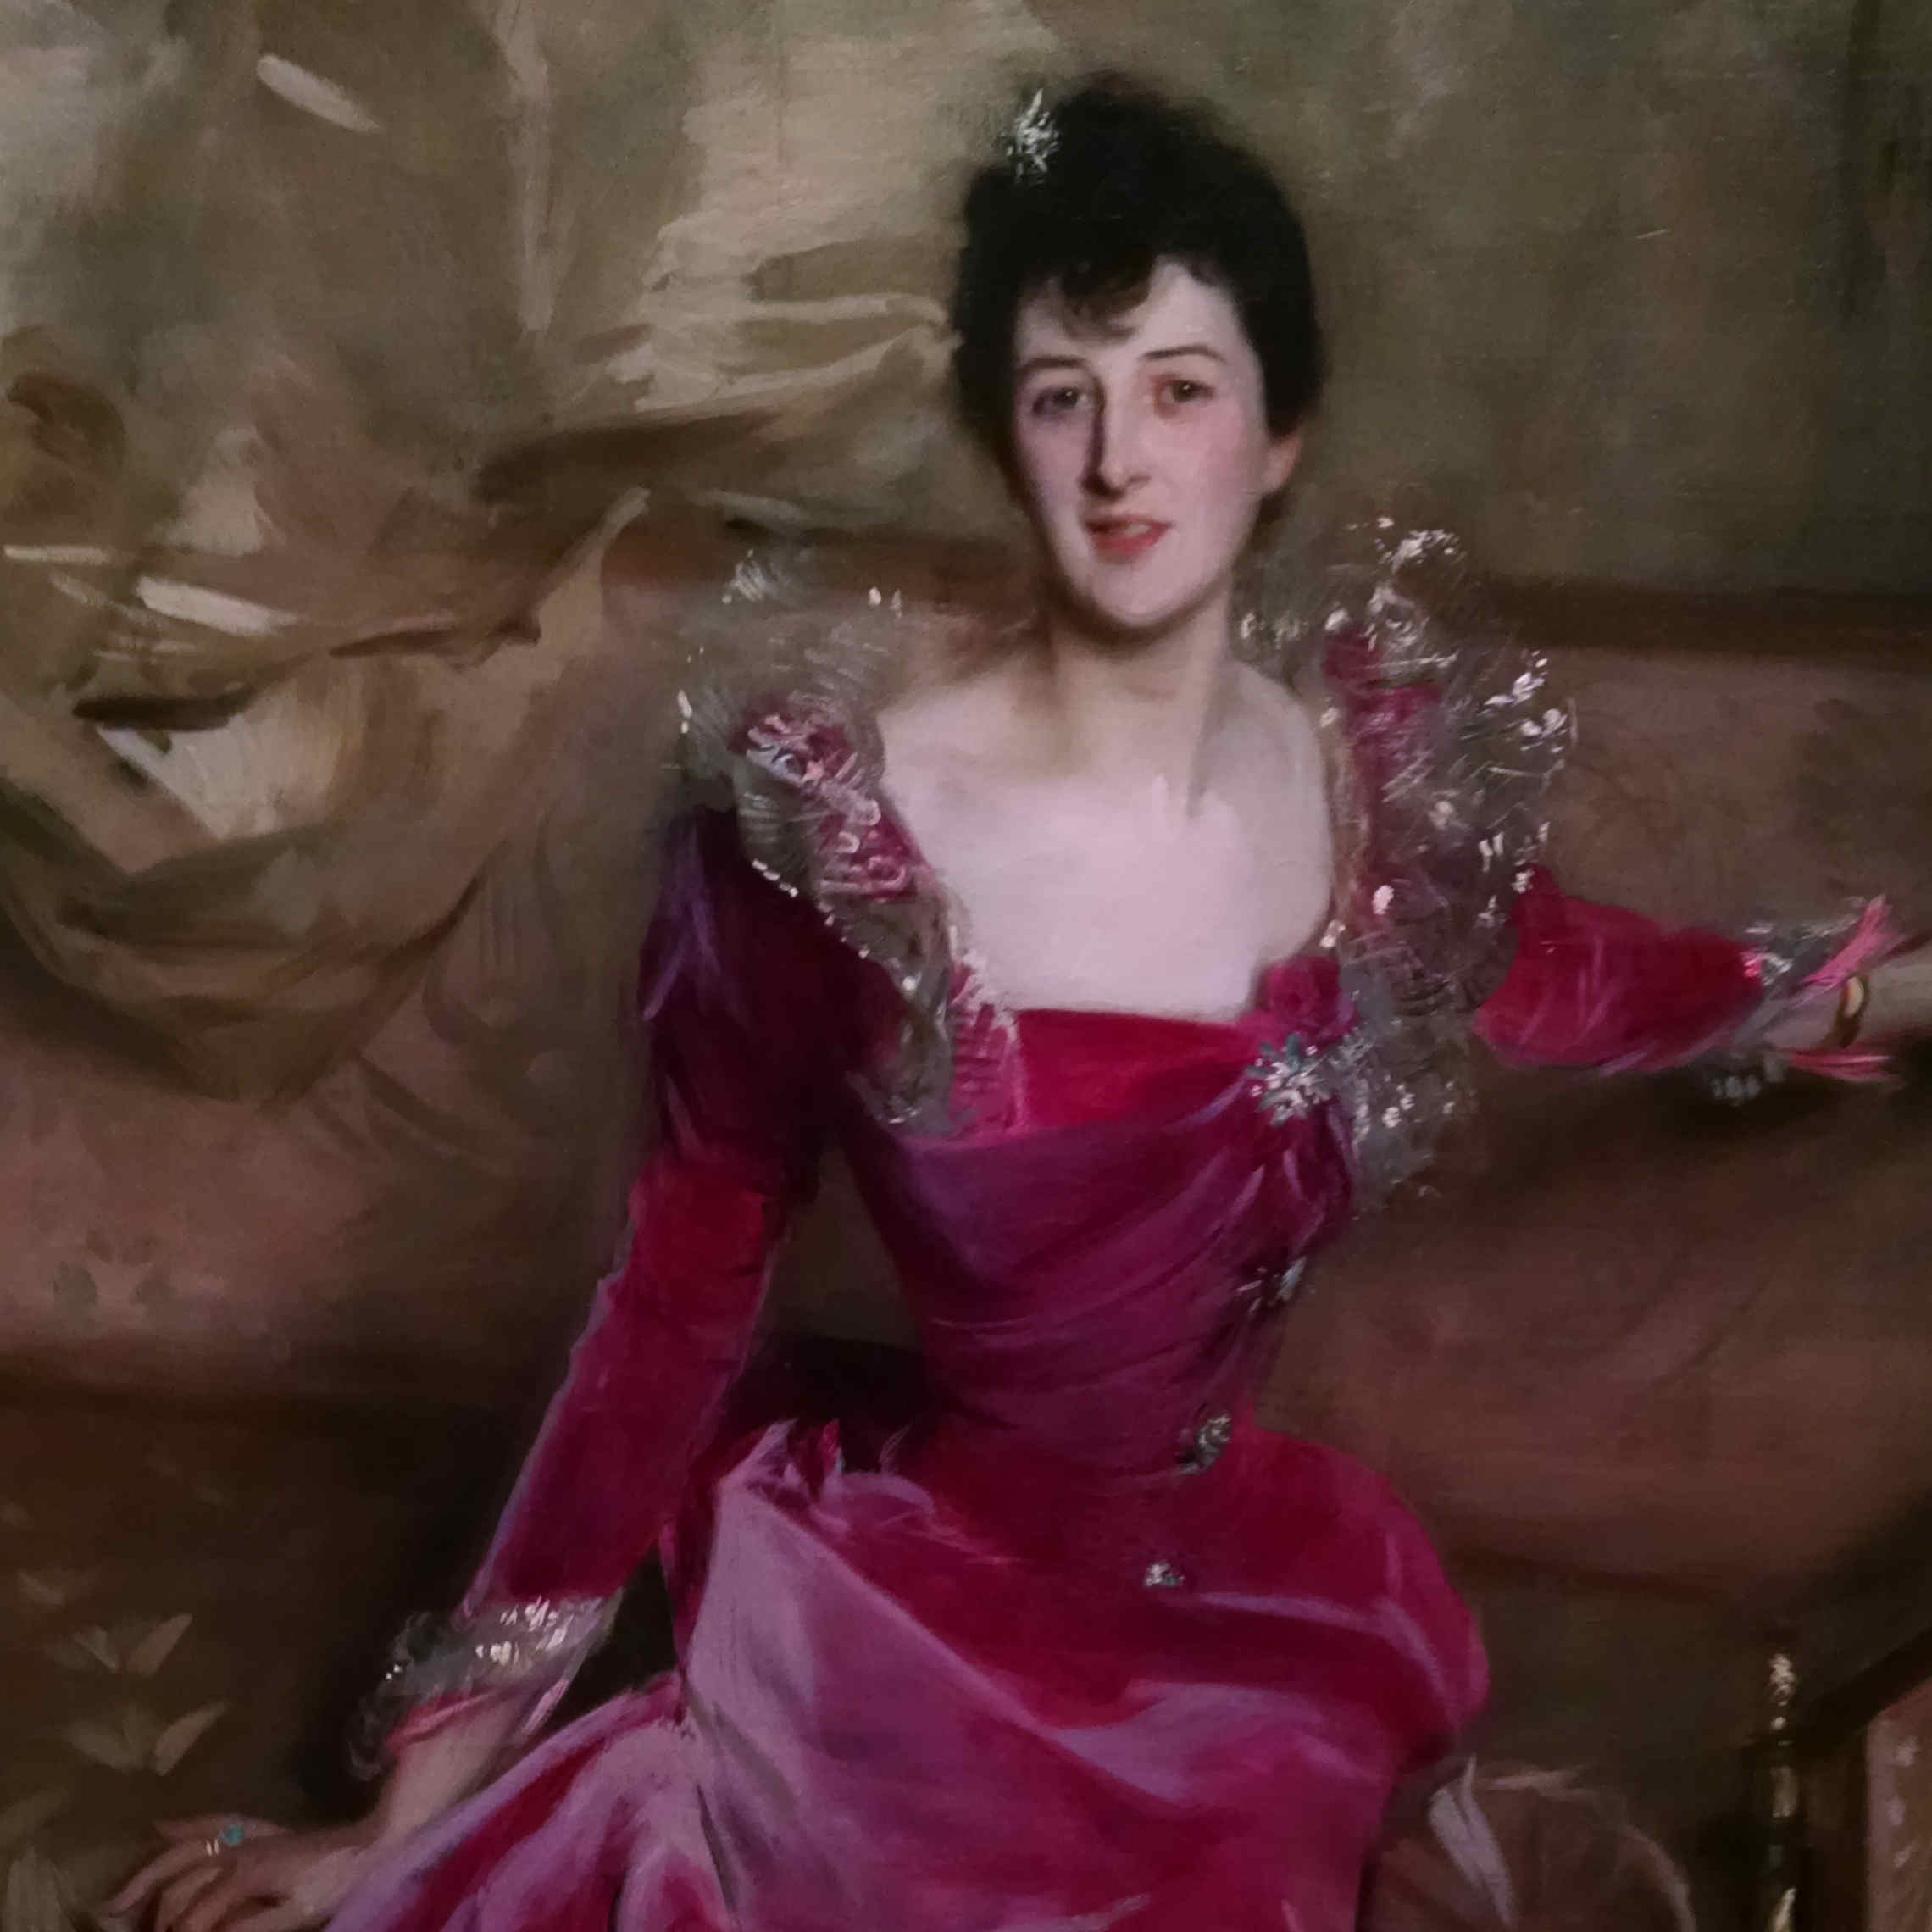 The portraits of John Sargent